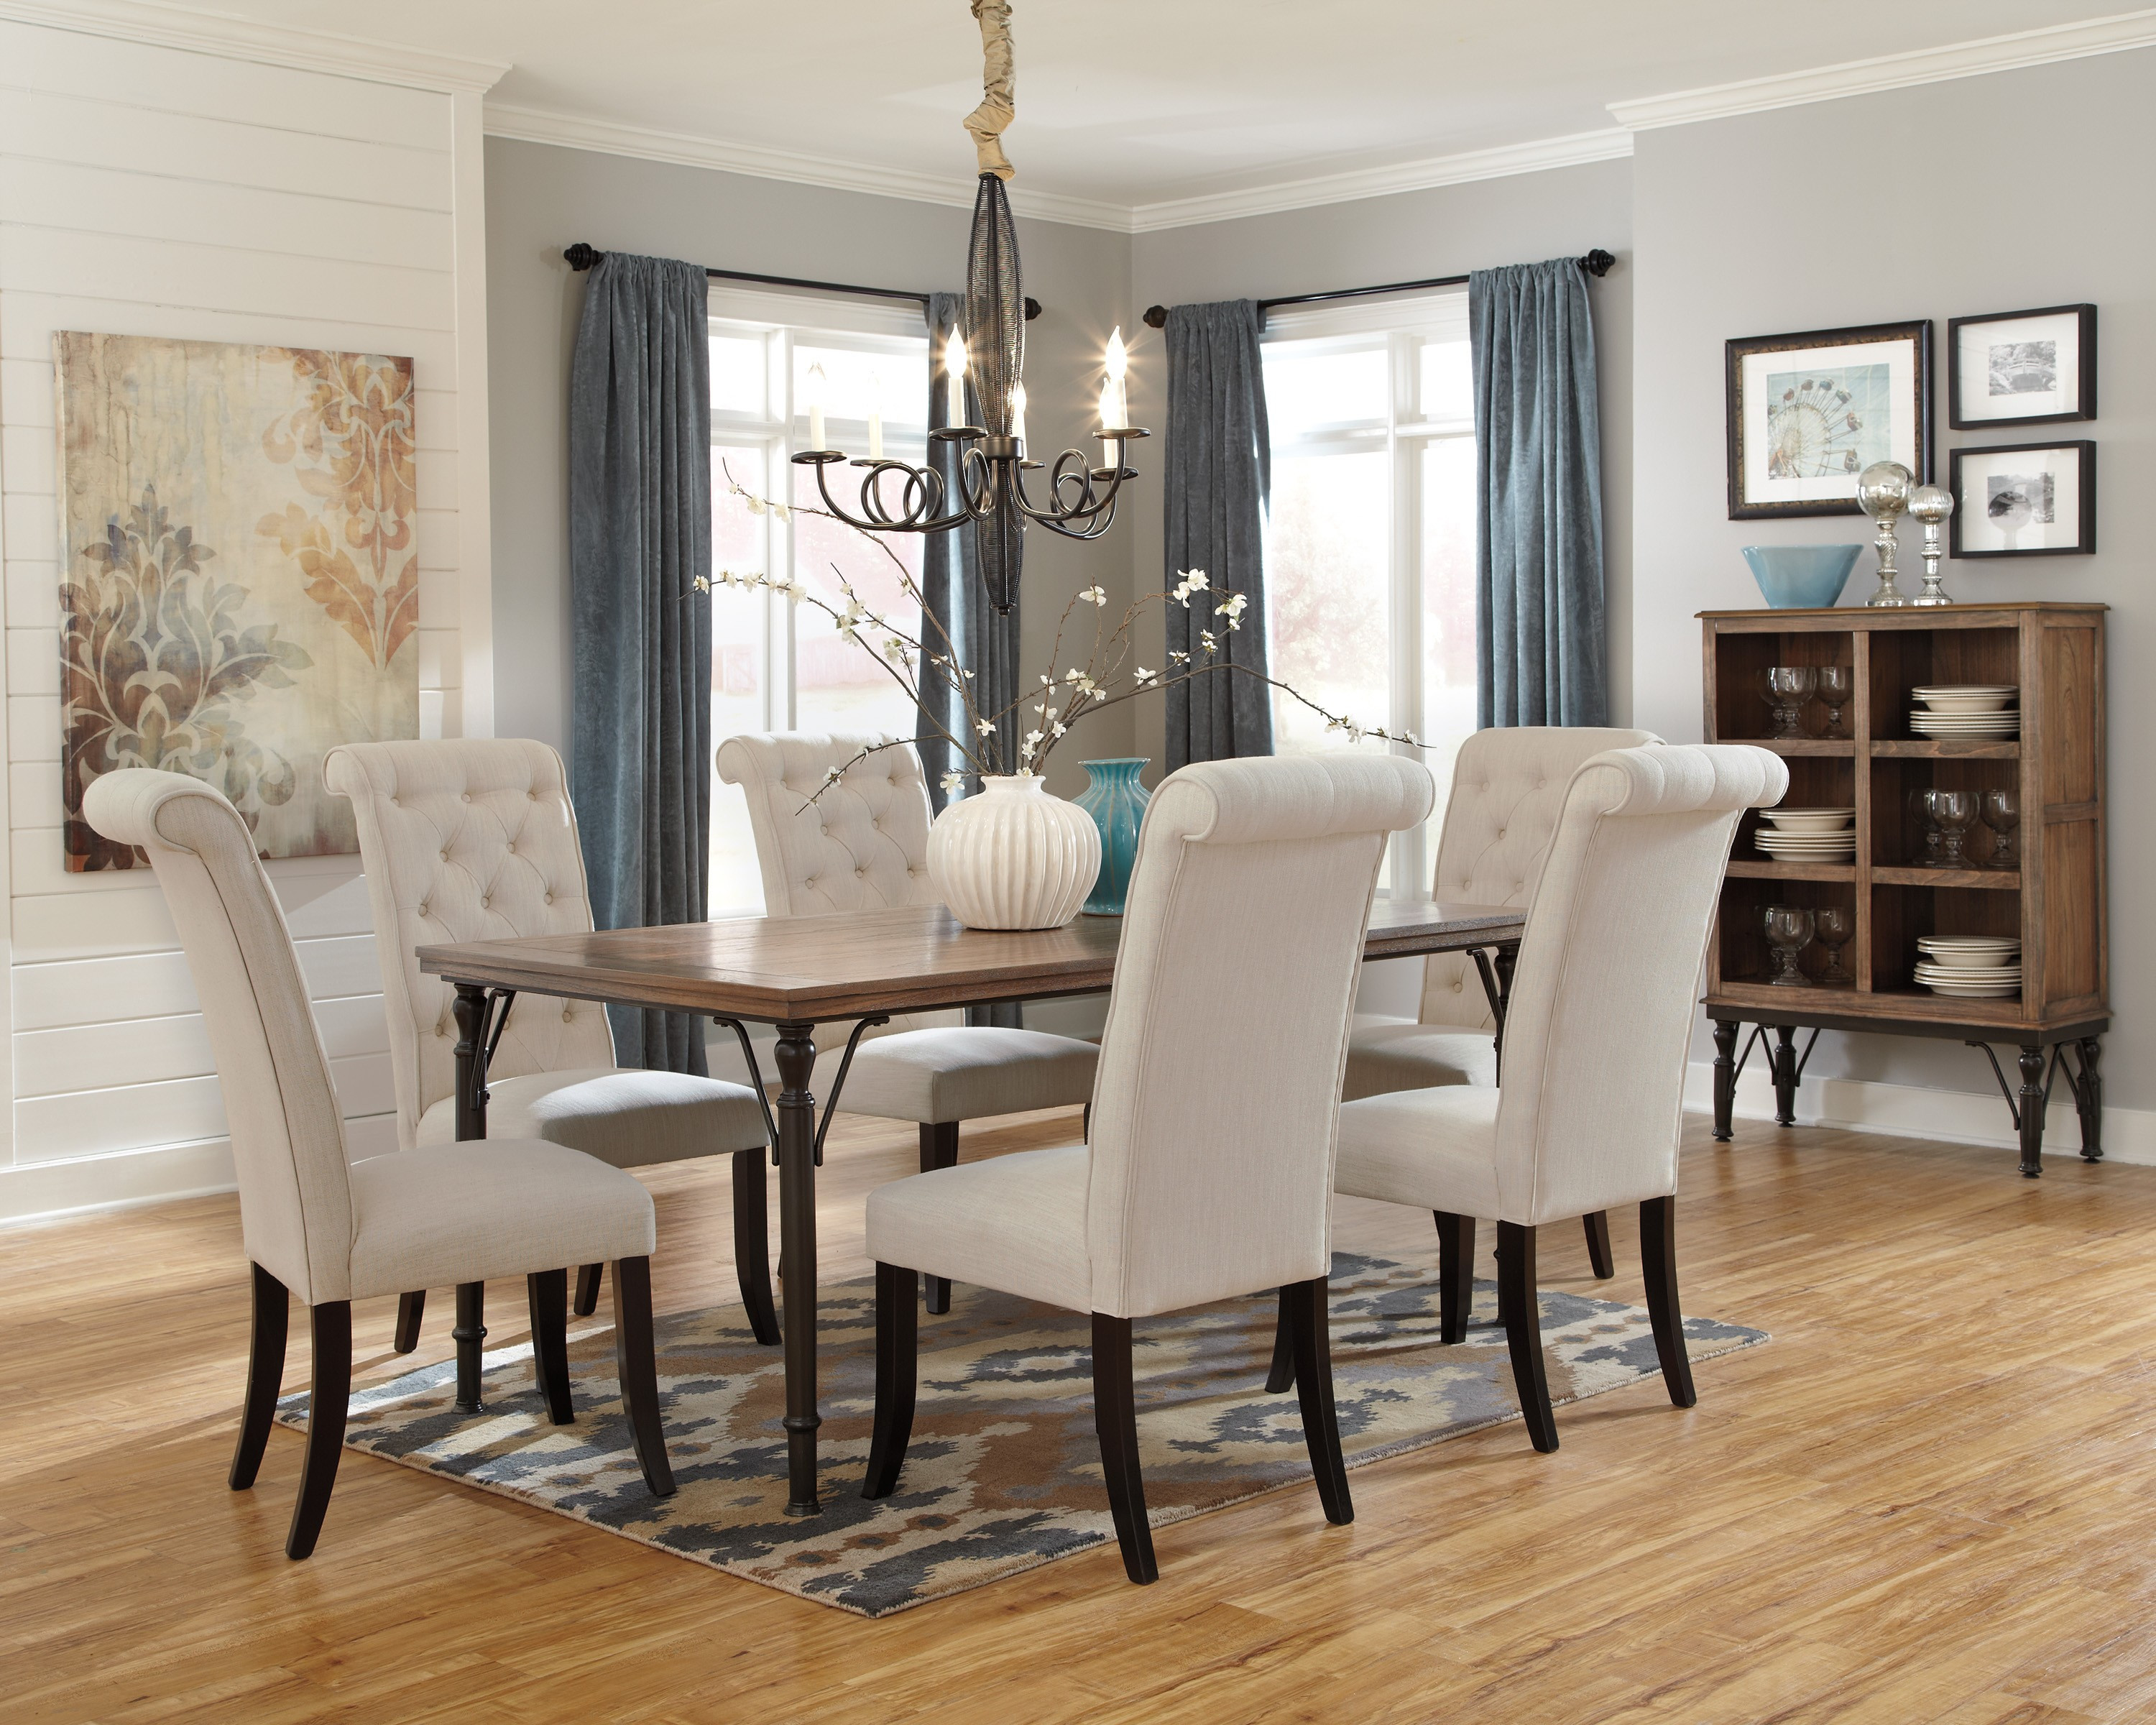 Best ideas about Dining Room Set . Save or Pin Buy Tripton Dining Room Set by Signature Design from Now.